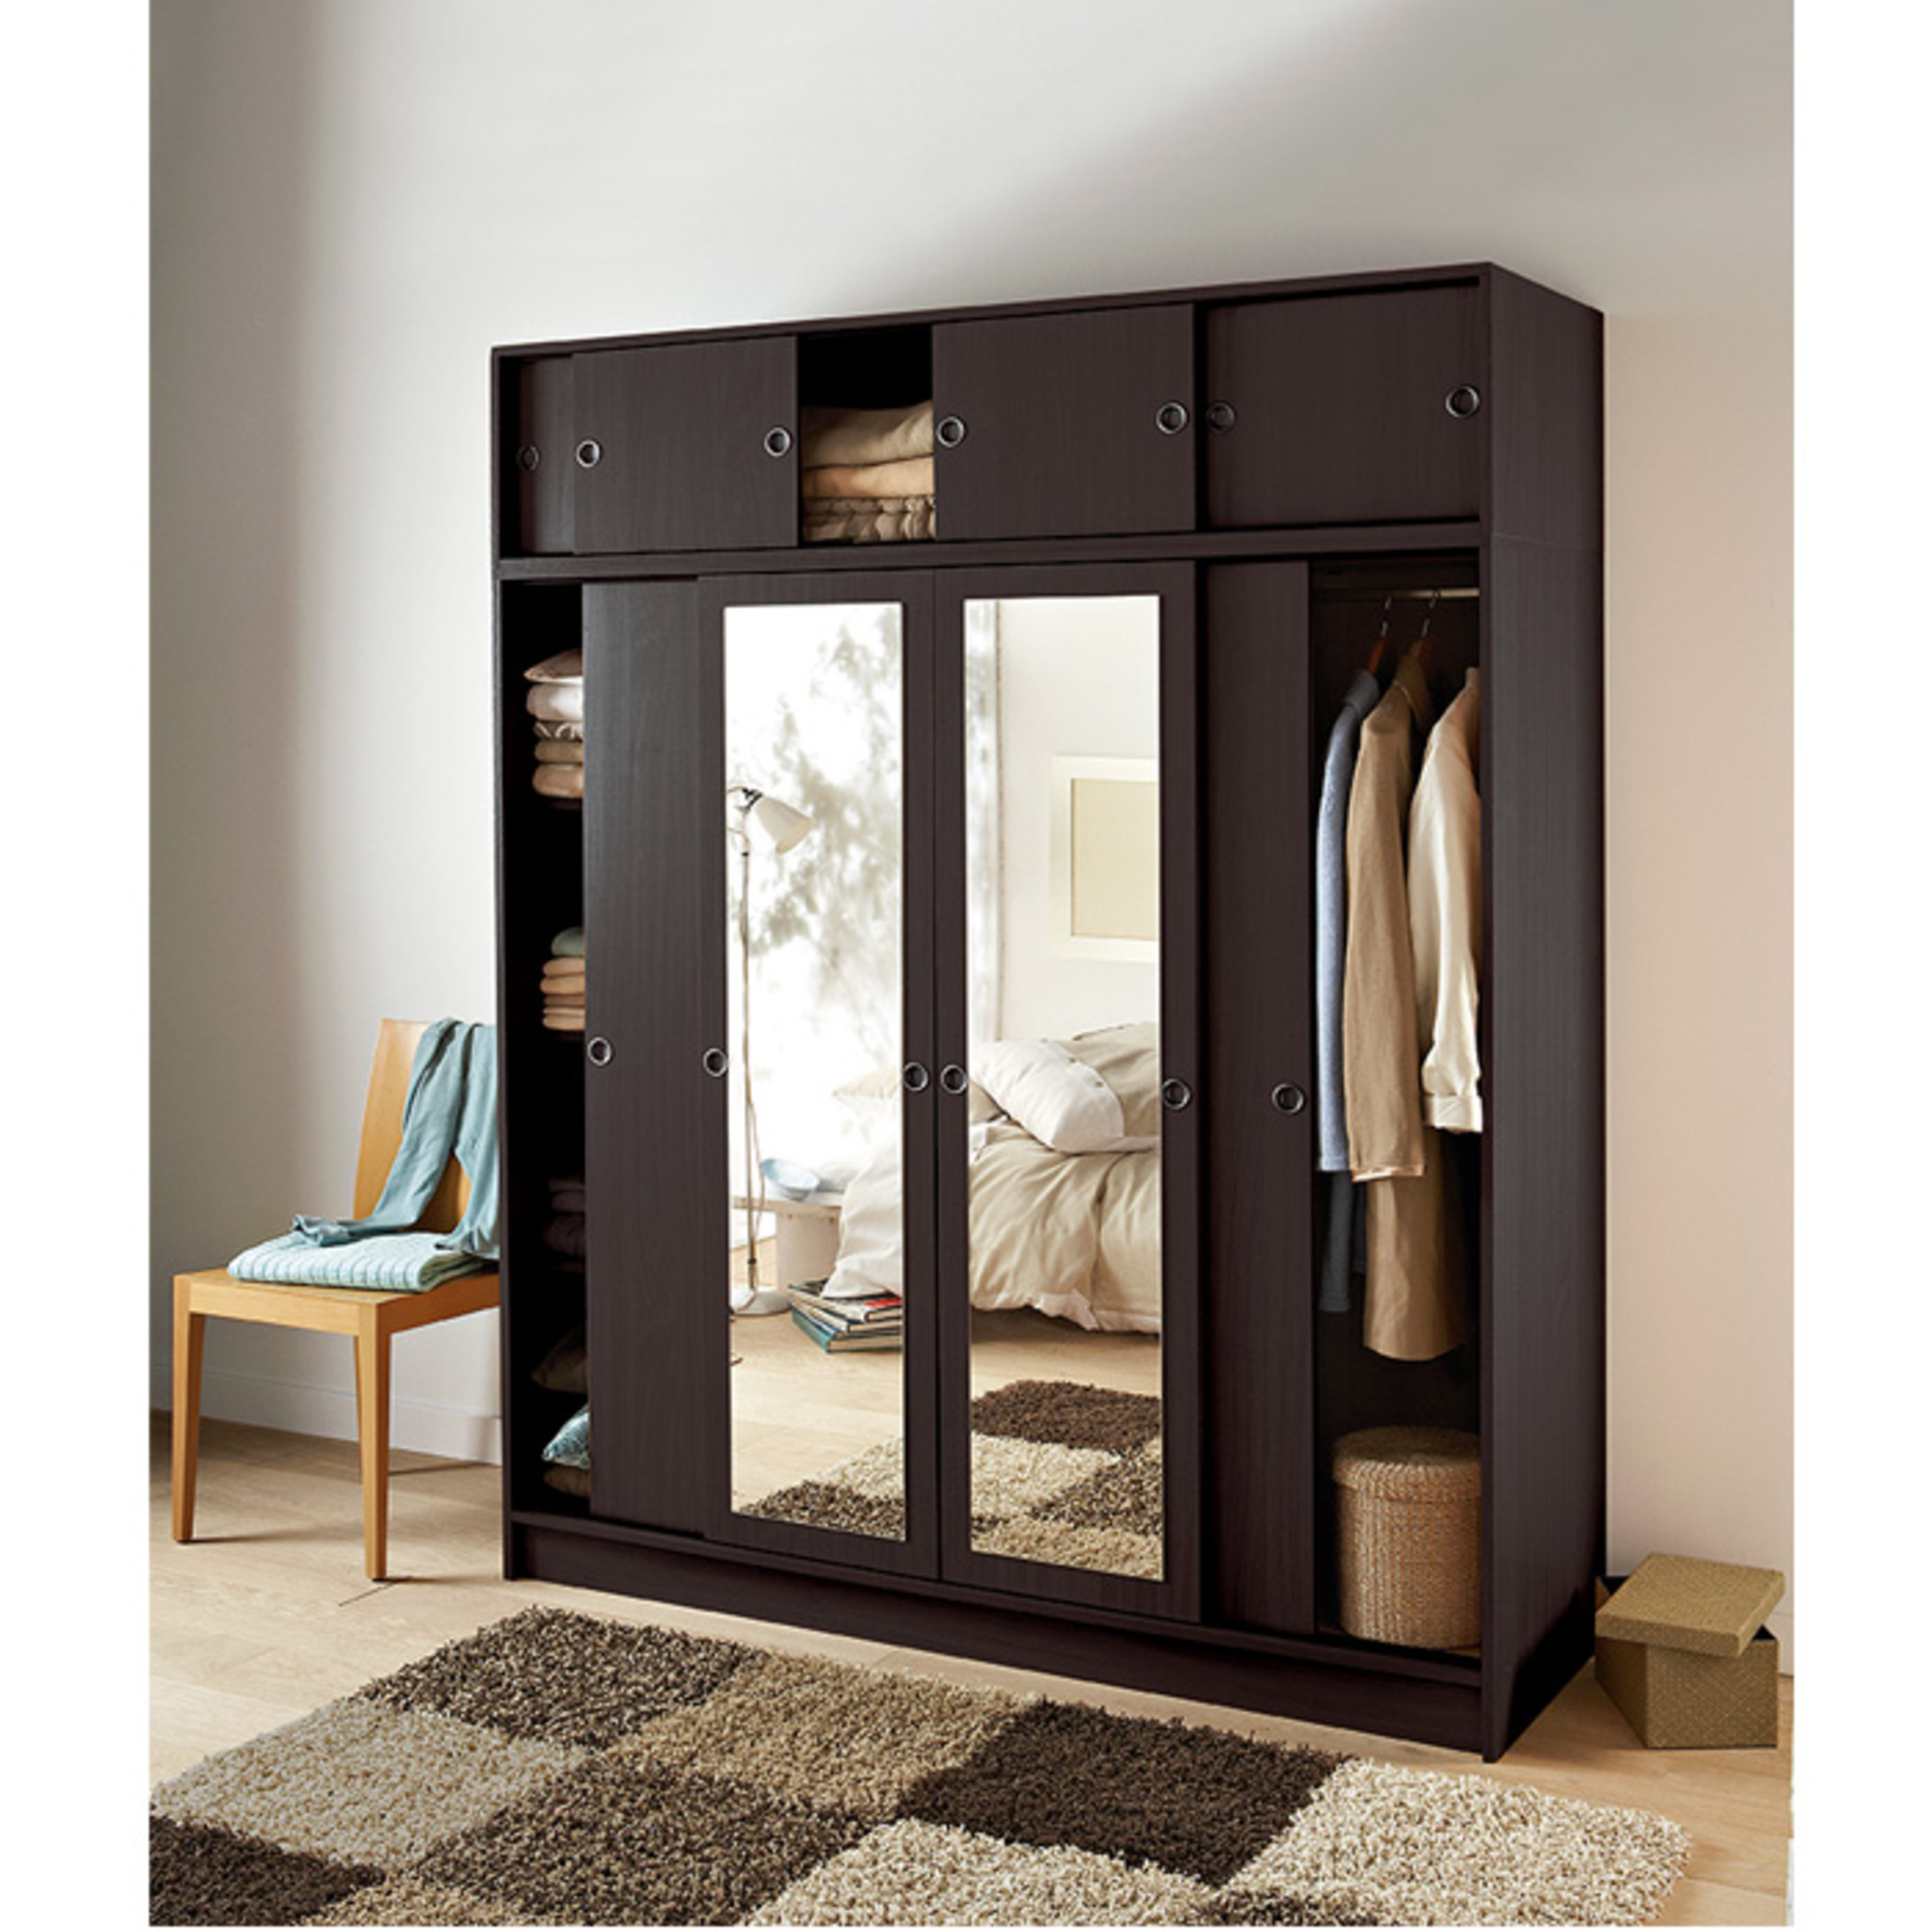 fabulous miroir de chambre ikea portes acheter u with. Black Bedroom Furniture Sets. Home Design Ideas